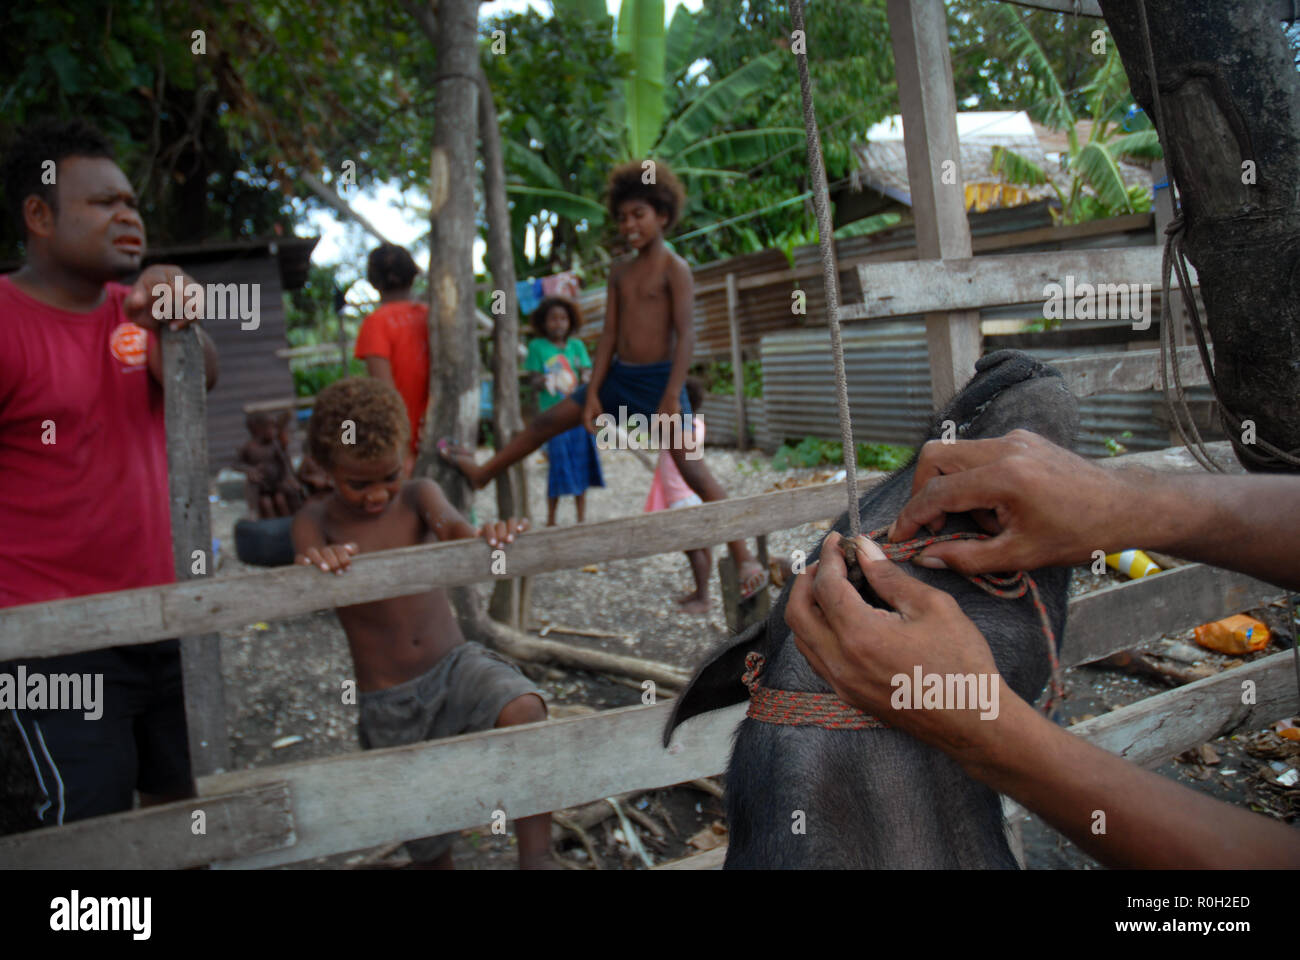 Men untying a newly slaughtered pig after hanging it, Honiara, Solomon Islands. - Stock Image